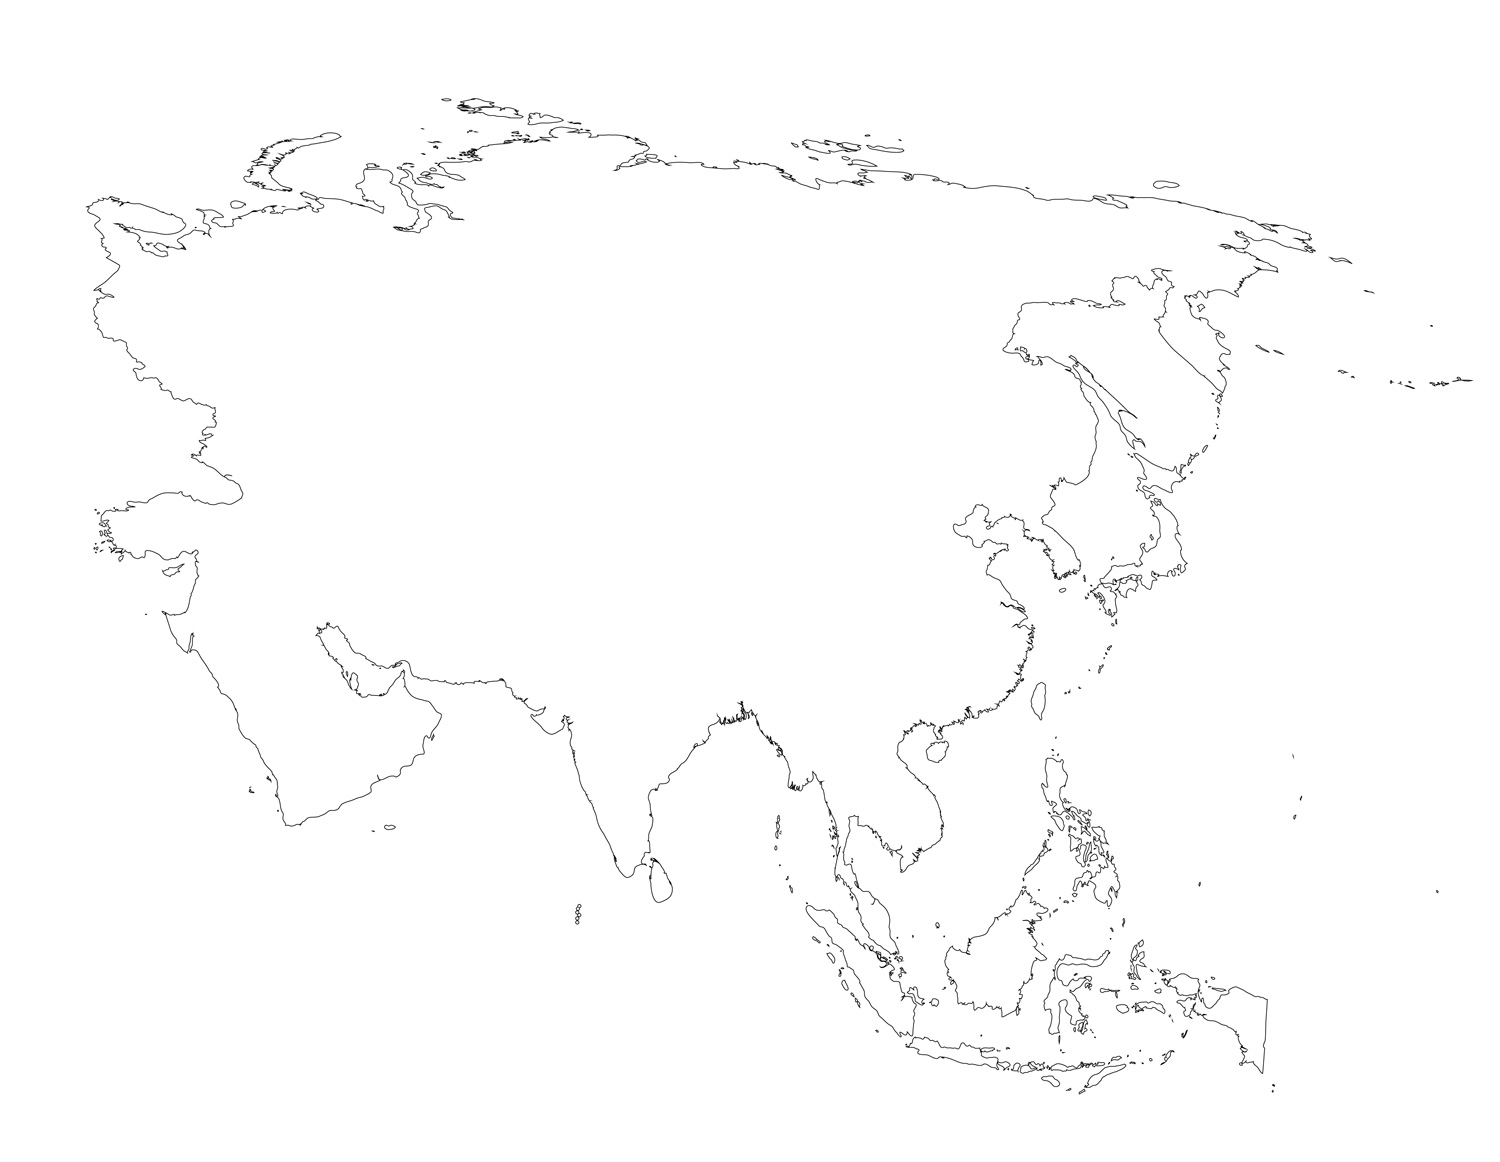 Blank Map Of Asia Printable.Blank Map Of Asia Printable